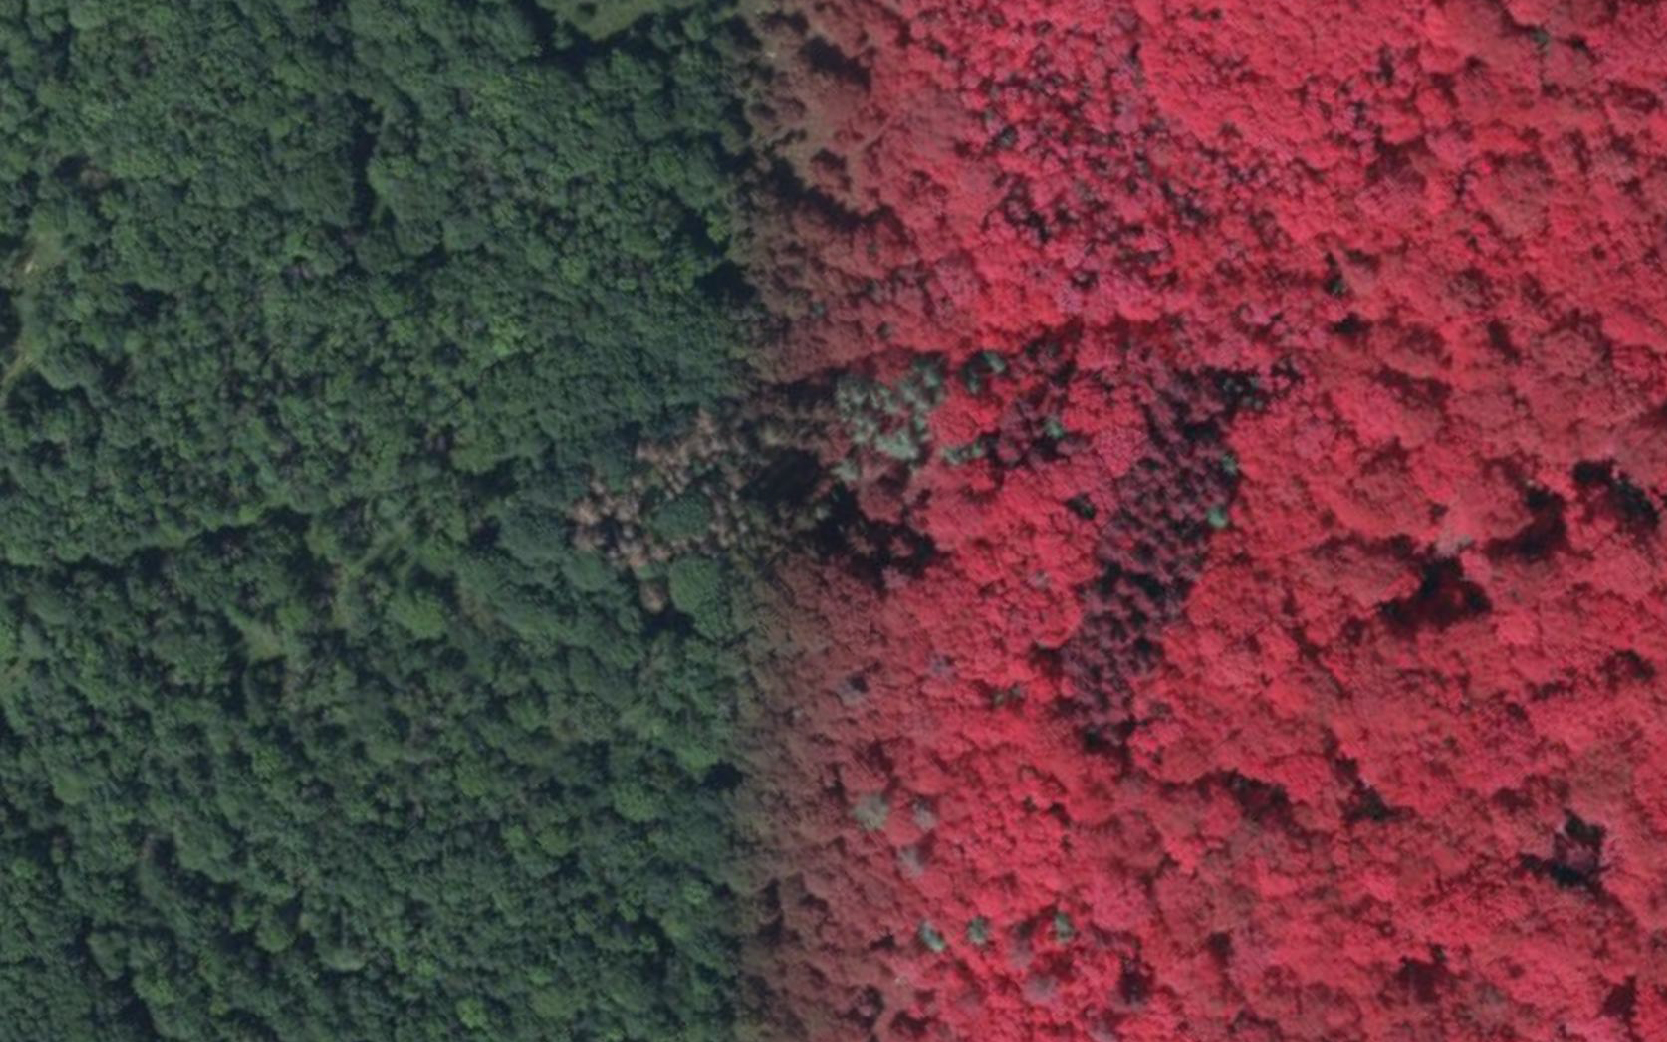 Excerpt from the aerial photography of the Hainich National Park: Comparison of infrared and RGB images. Dead trees stand out clearly in both images.